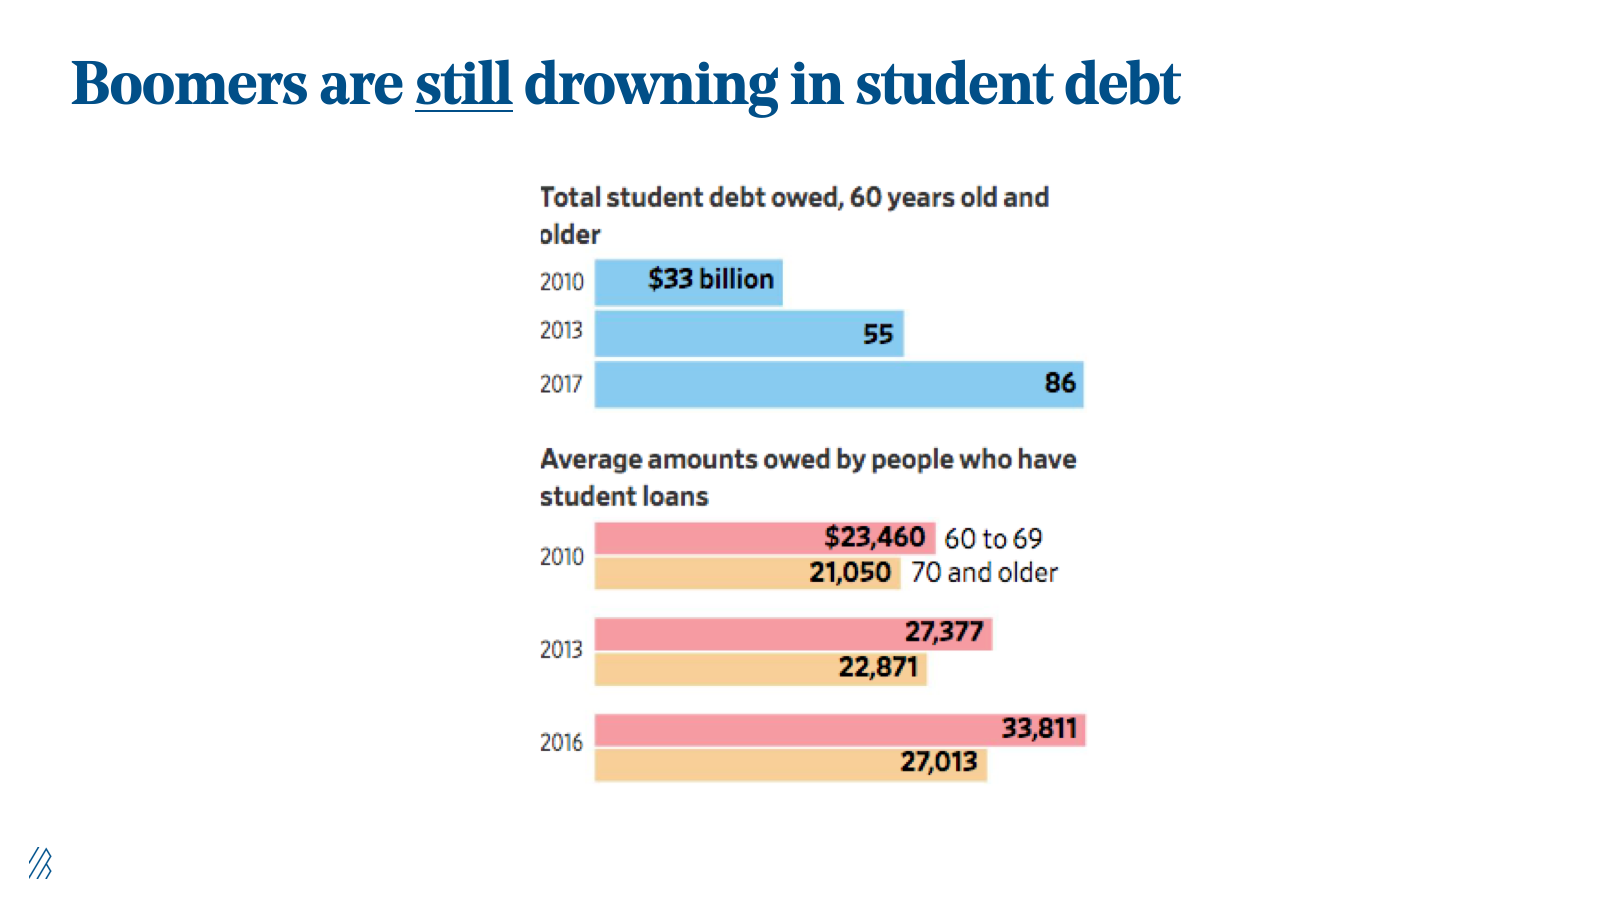 Boomers are still drowning in student debt.